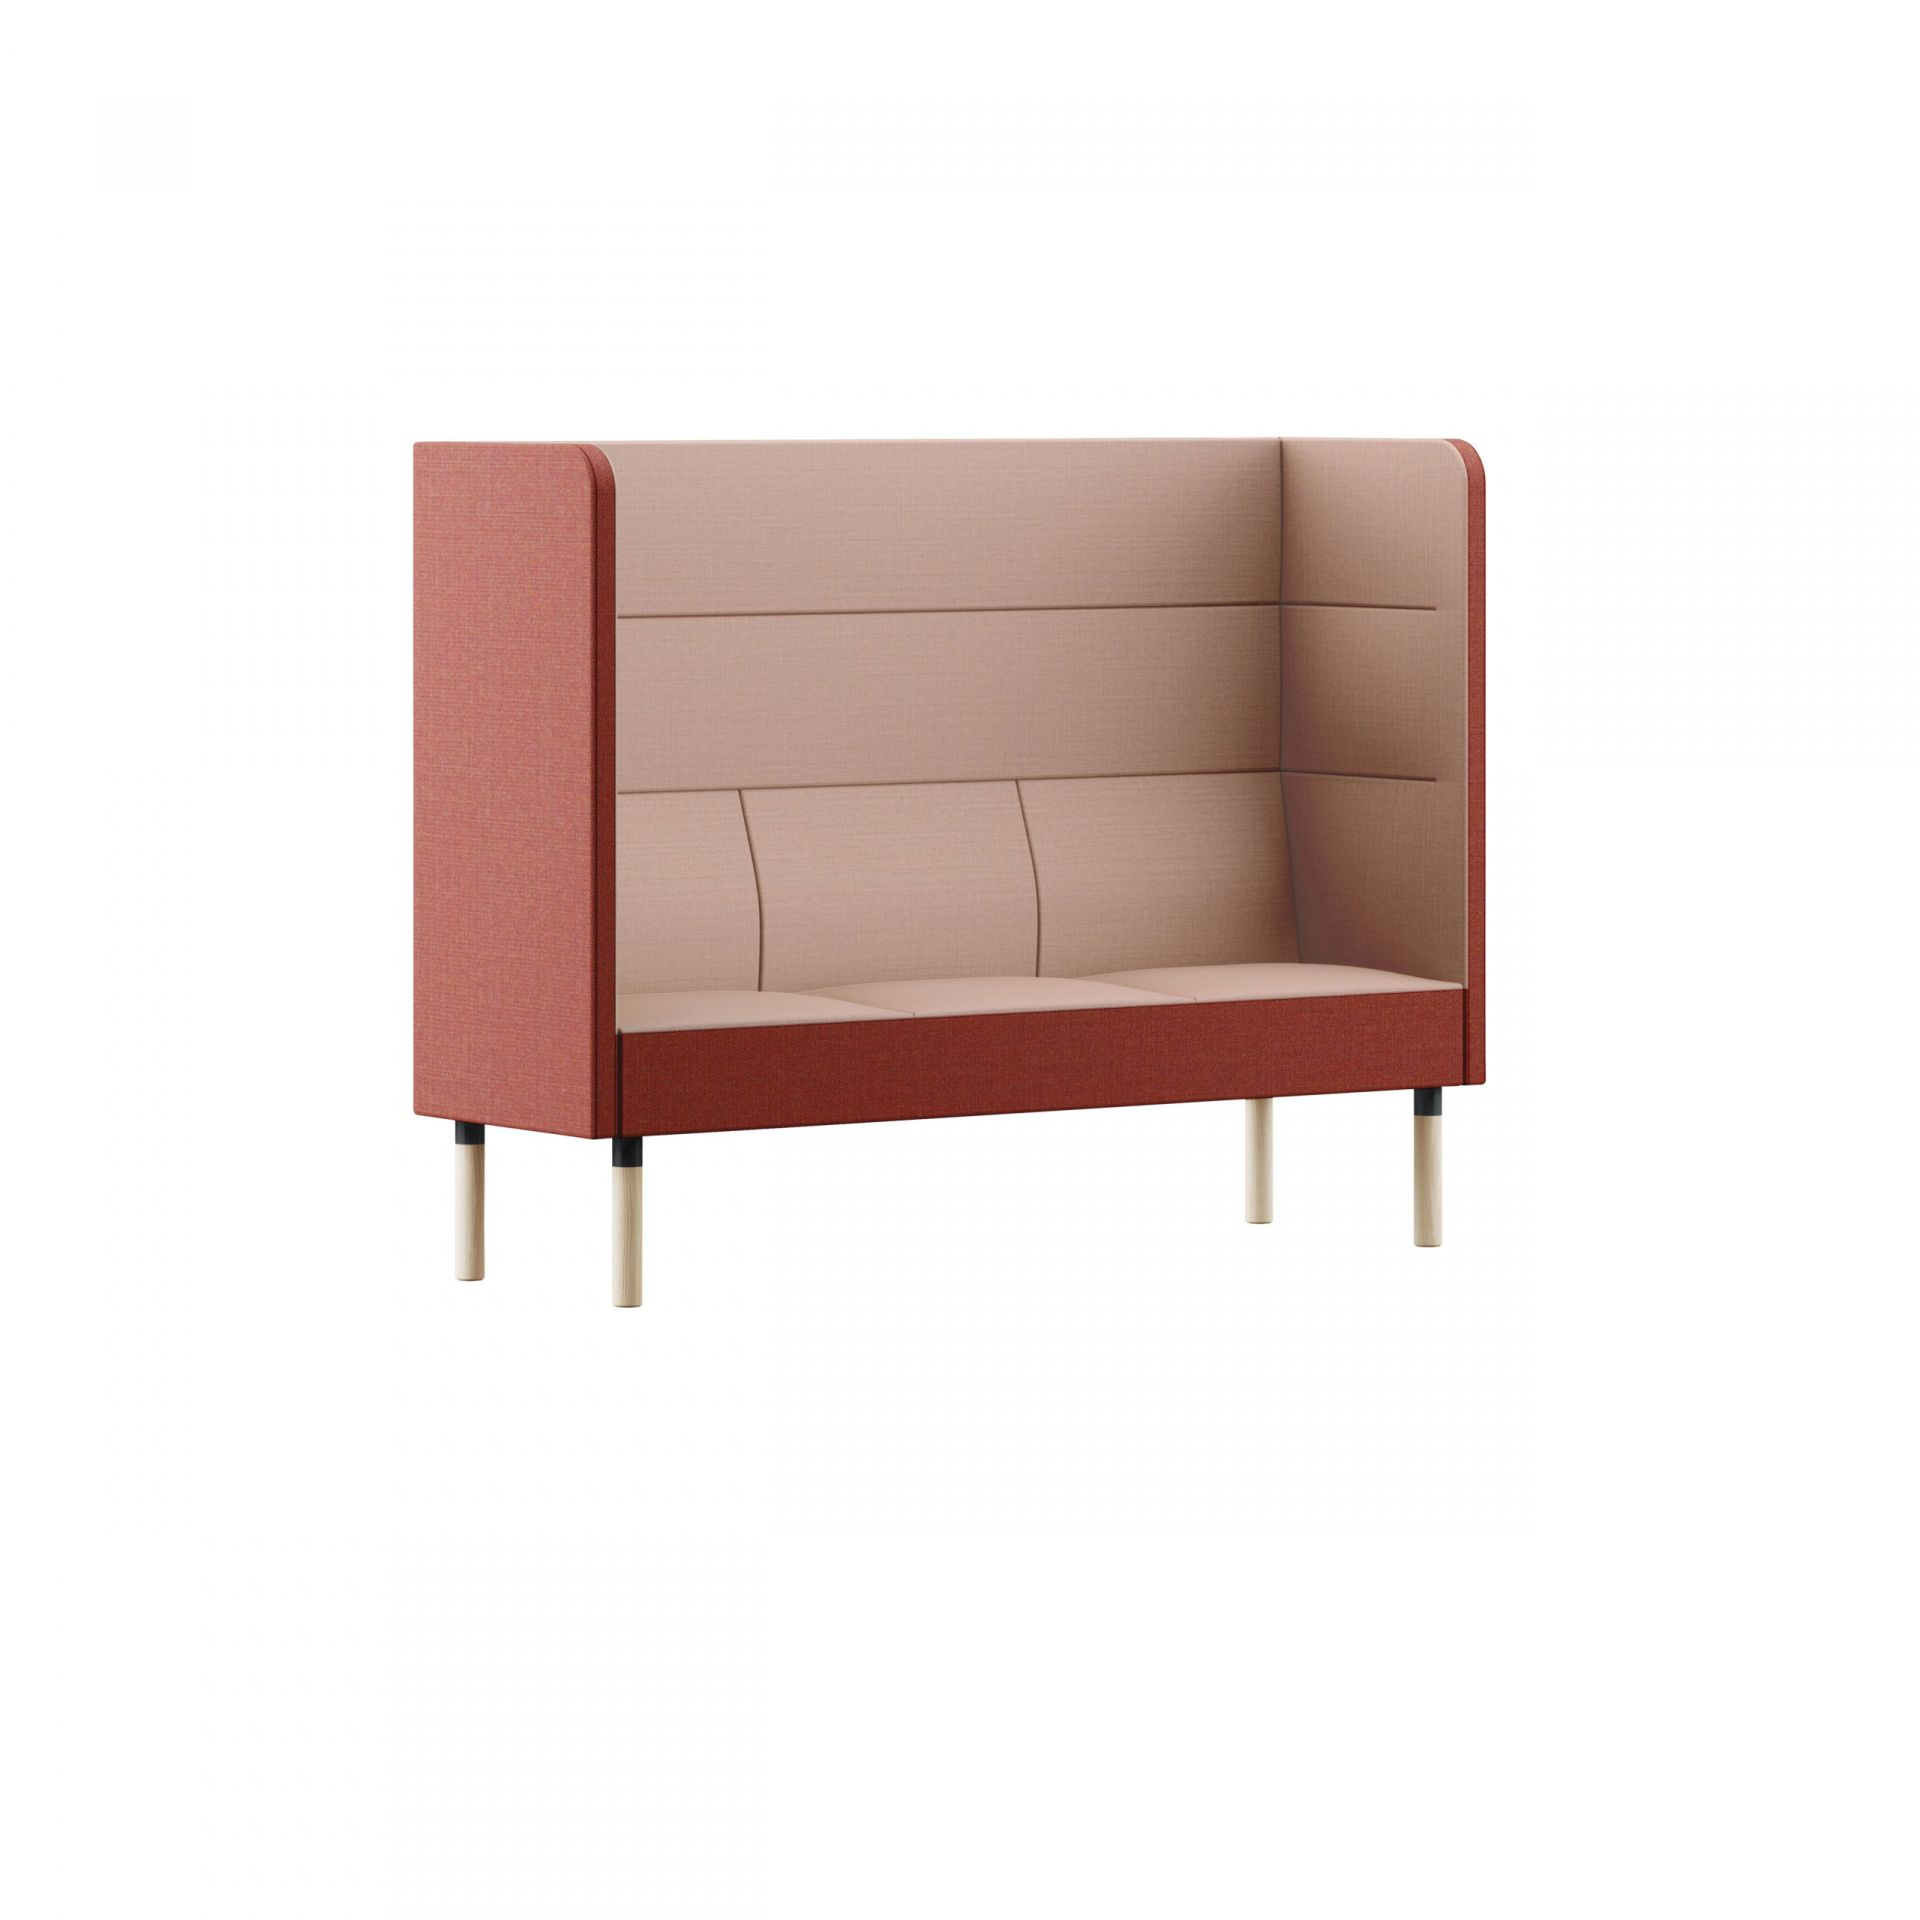 Mingle Sofa with wooden legs product image 2